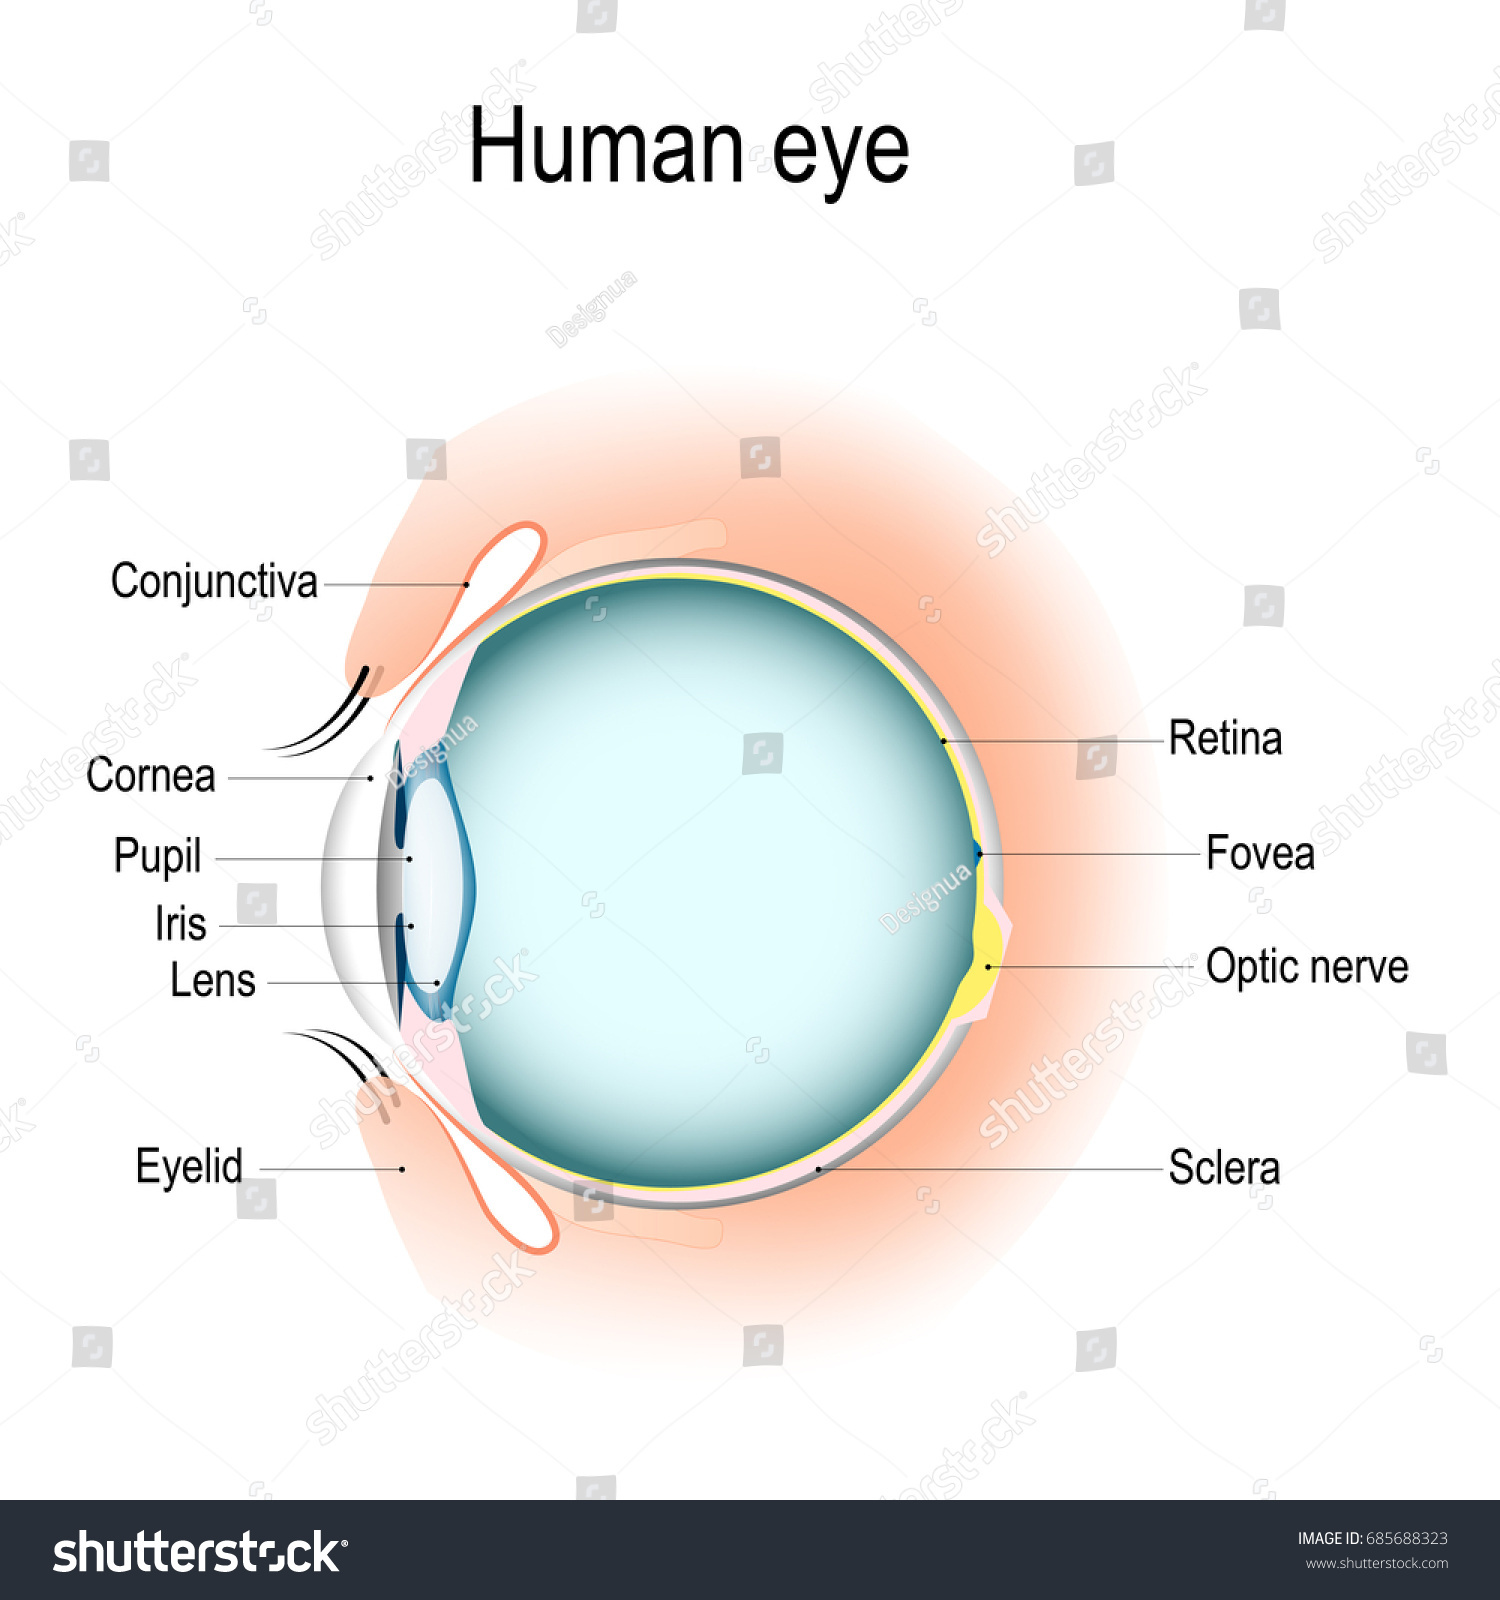 Anatomy Human Eye Vertical Section Eye Stockillustration 685688323